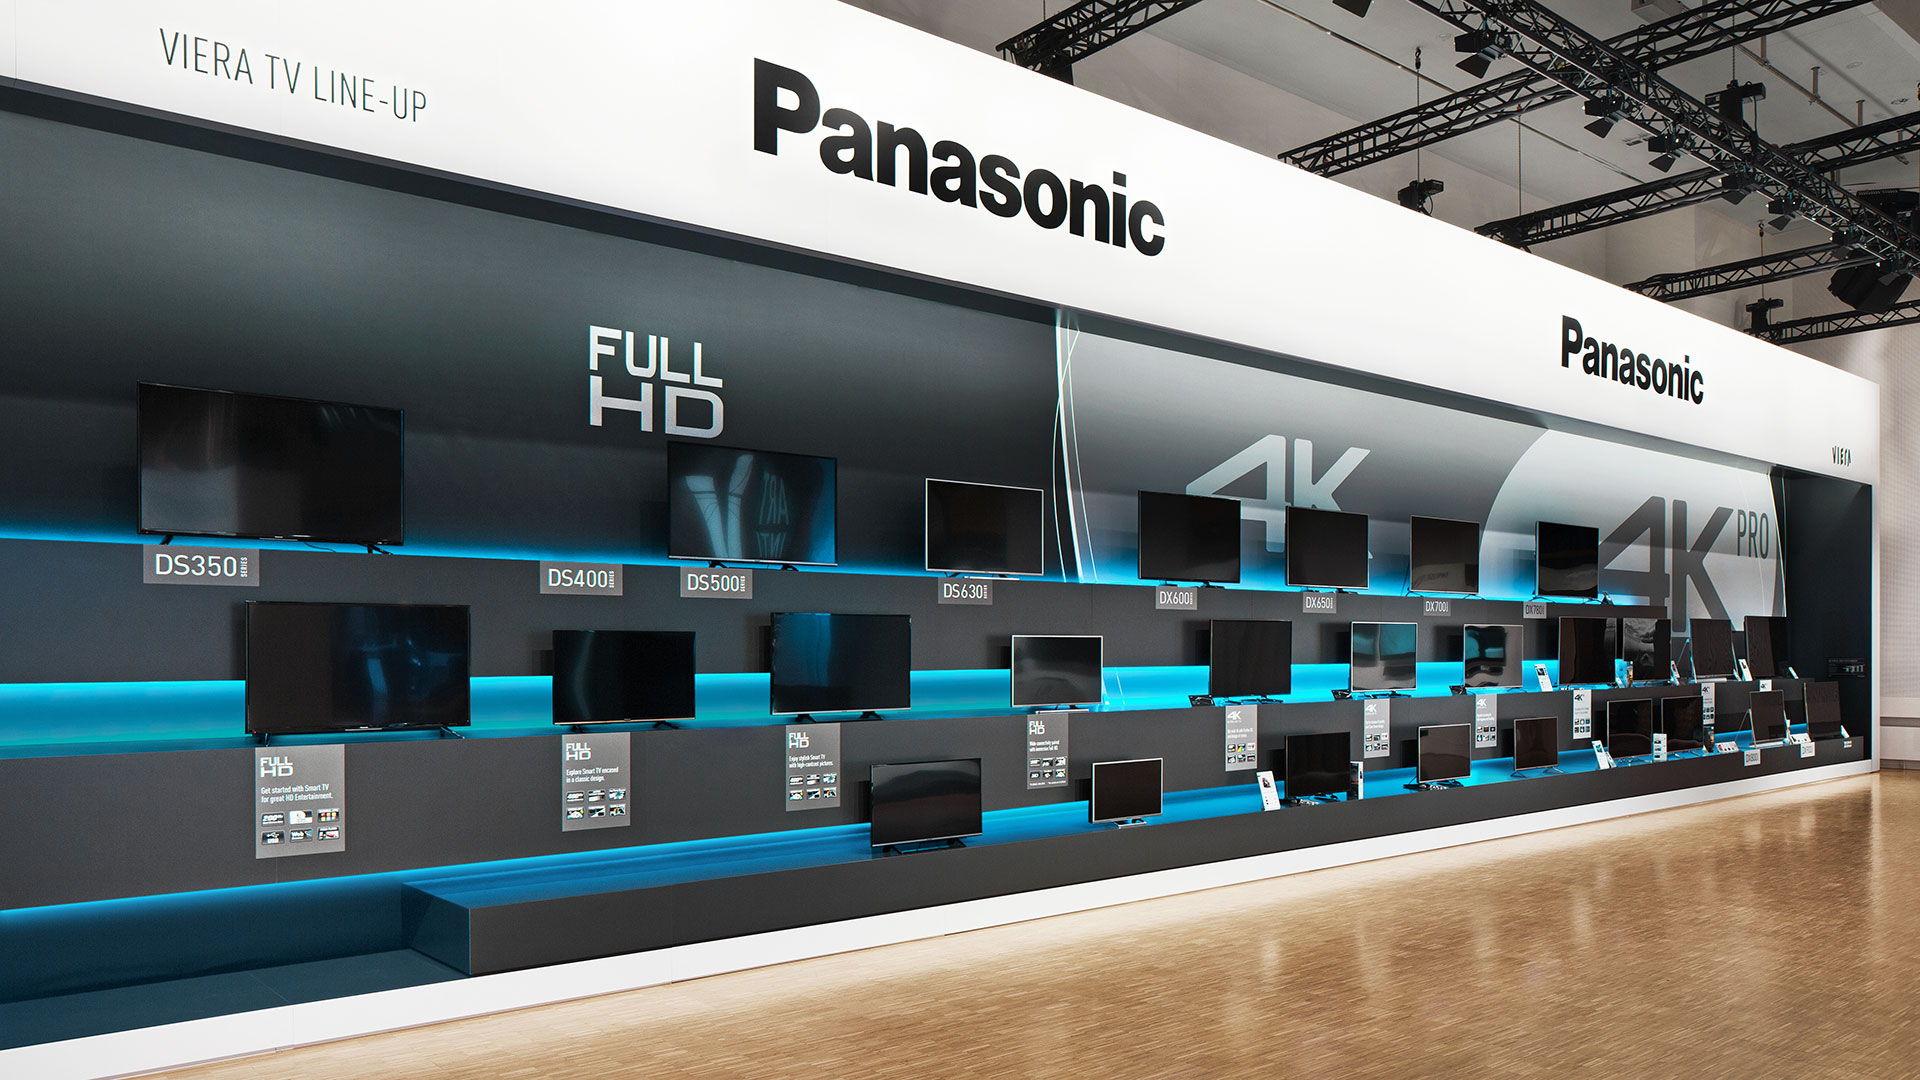 Dart stages the exhibition Convention 2016 for Panasonic